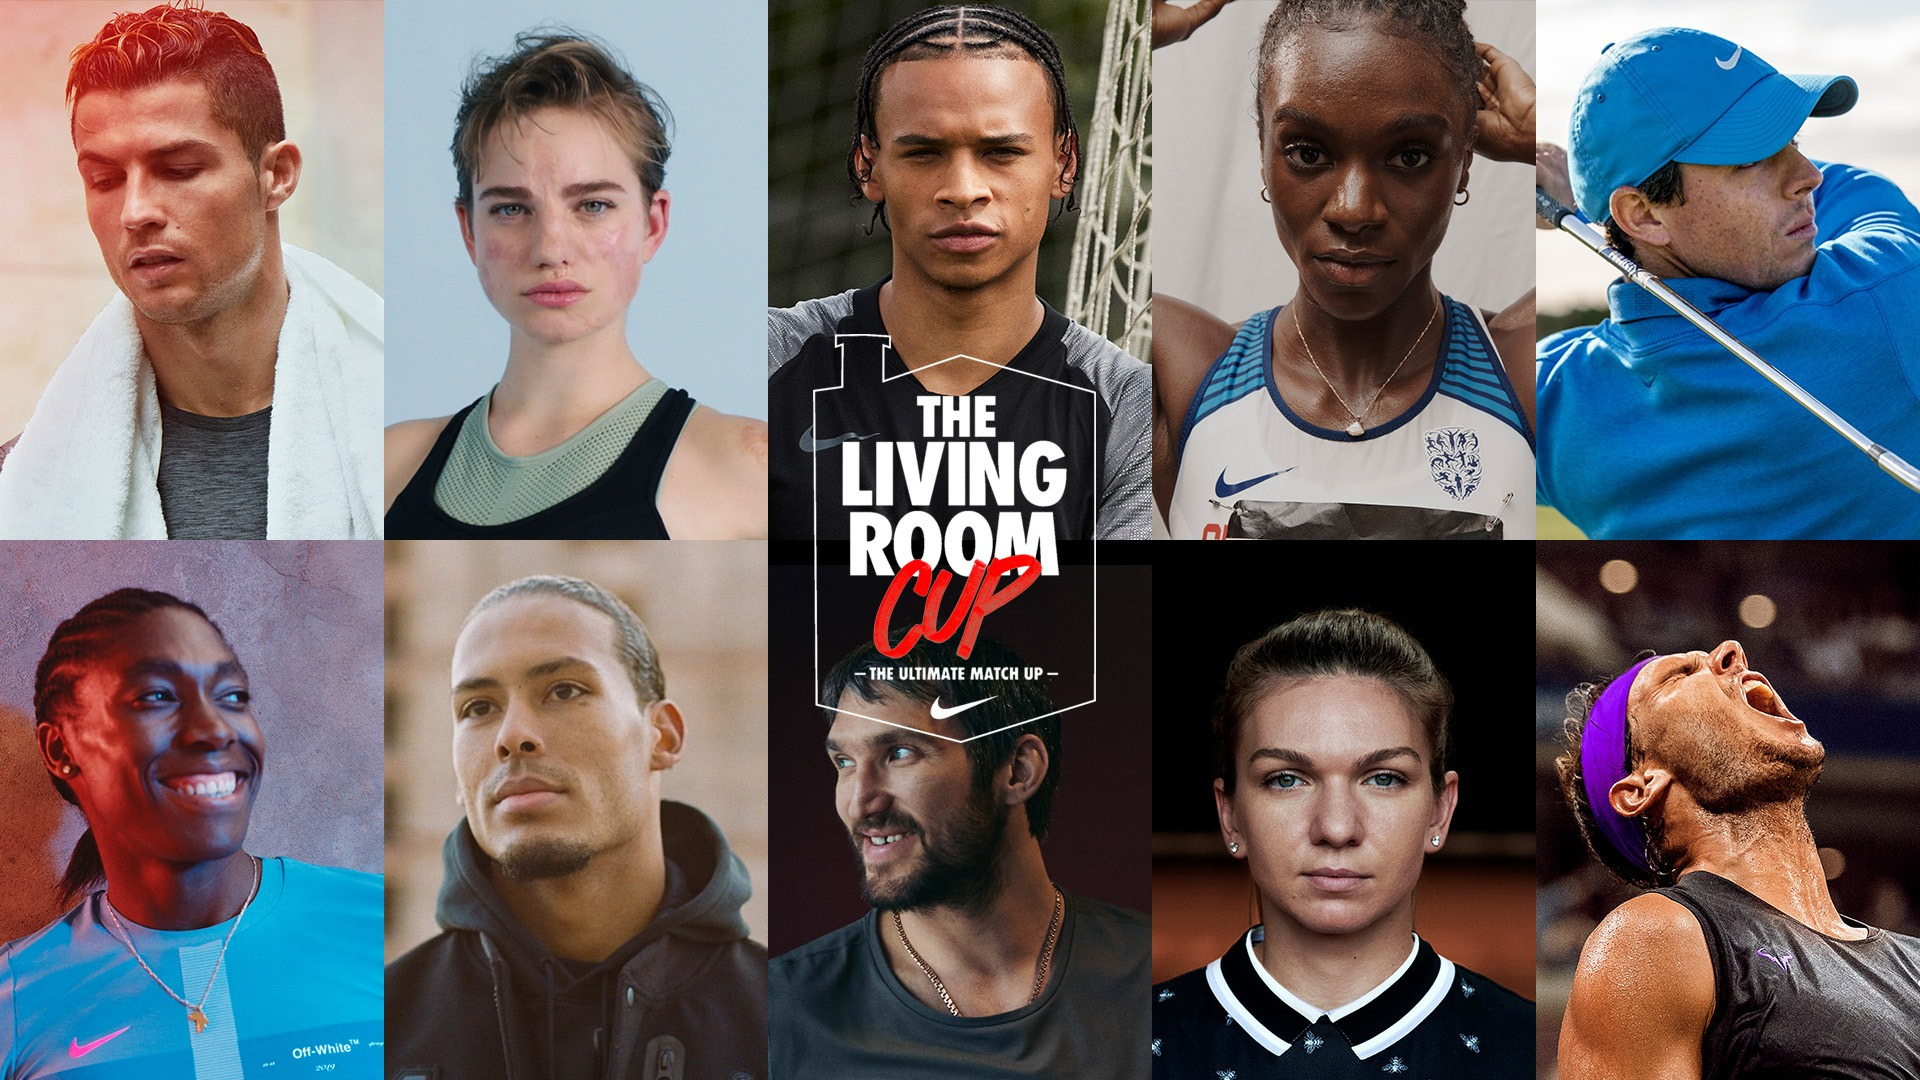 Nike: The Living Room Cup